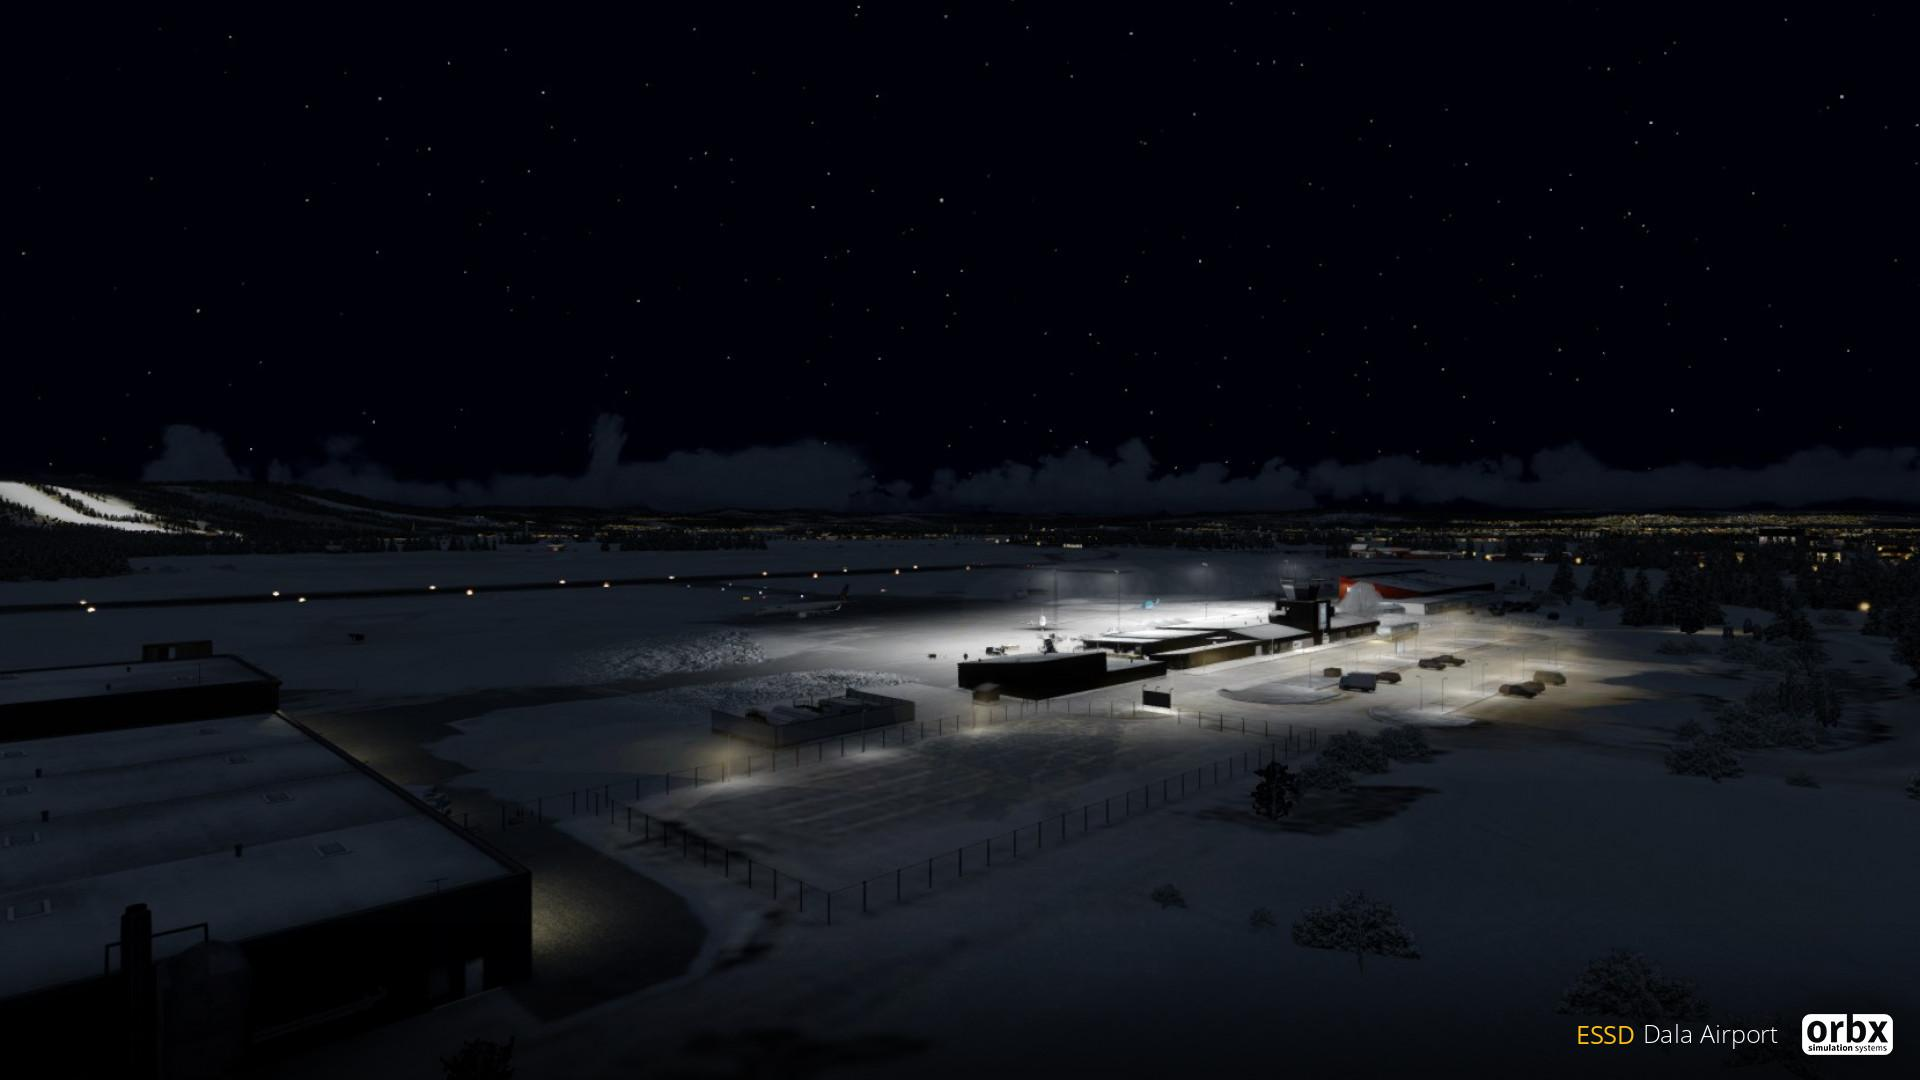 The Swedish Bundle: ESSD Dala Airport - Preview Screenshots